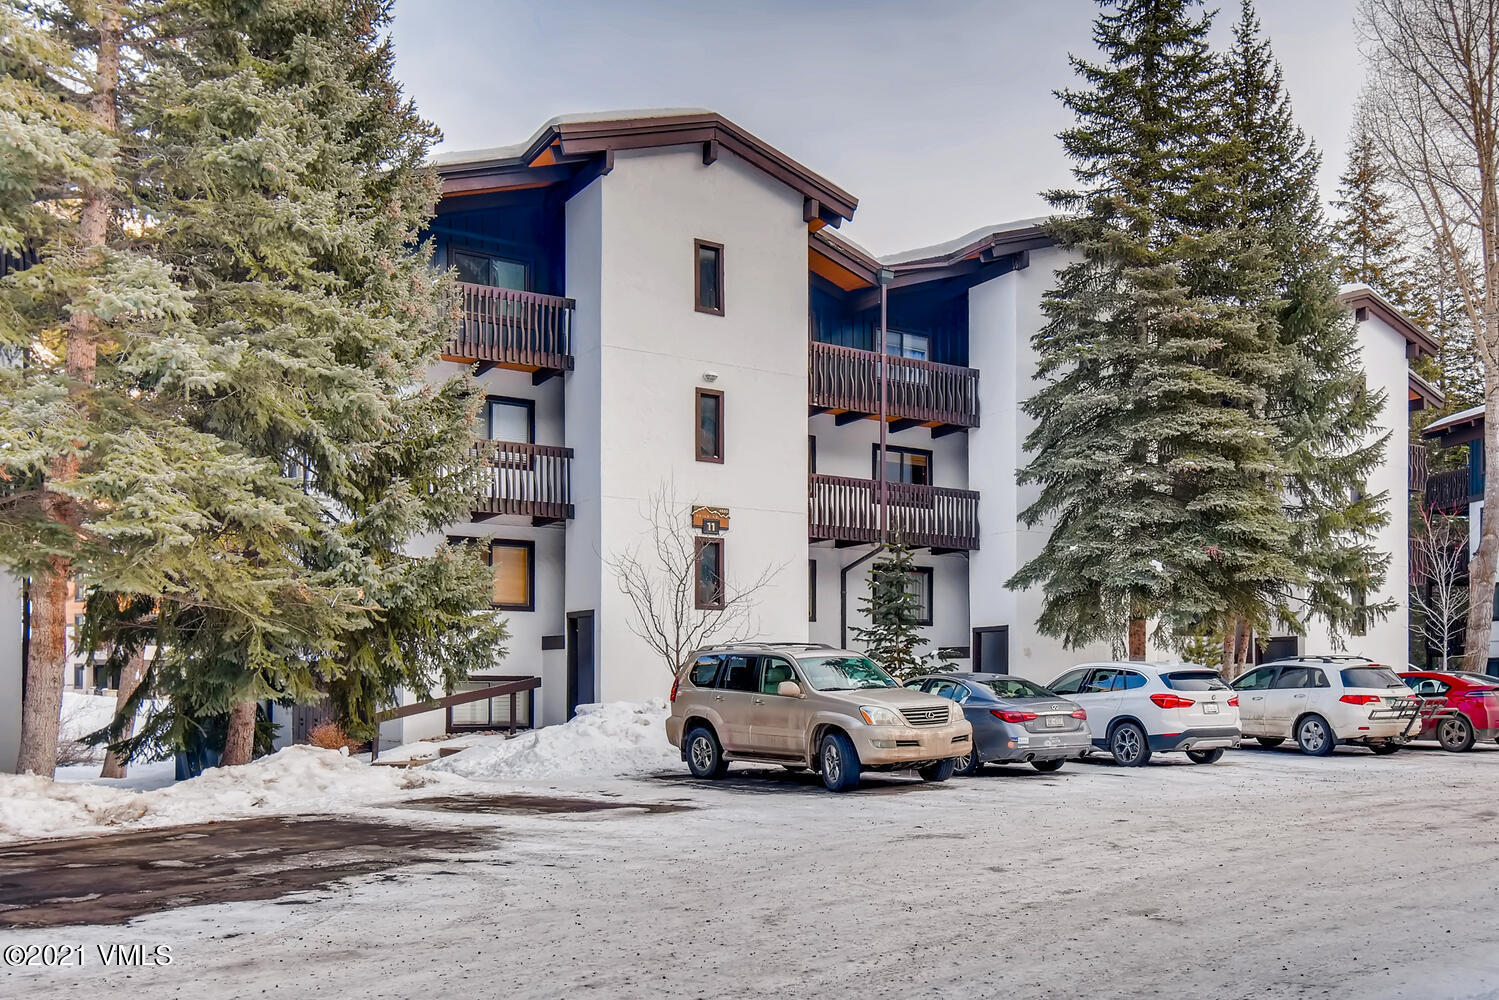 Own a slice of ski paradise in this beautiful fully furnished Vail Racquet Club condo. This gorgeous completely renovated unit sits in Bldg 11, which has a beautiful creek-side setting, close proximity to the clubhouse and amenities, which include pool, spa, fitness center, eight tennis courts, on site front desk, and restaurant and bar.  And getting to the slopes is a cinch with a short walk to the free Town of Vail bus service.  Pets are allowed, and owners can do short term rentals through the on site management.